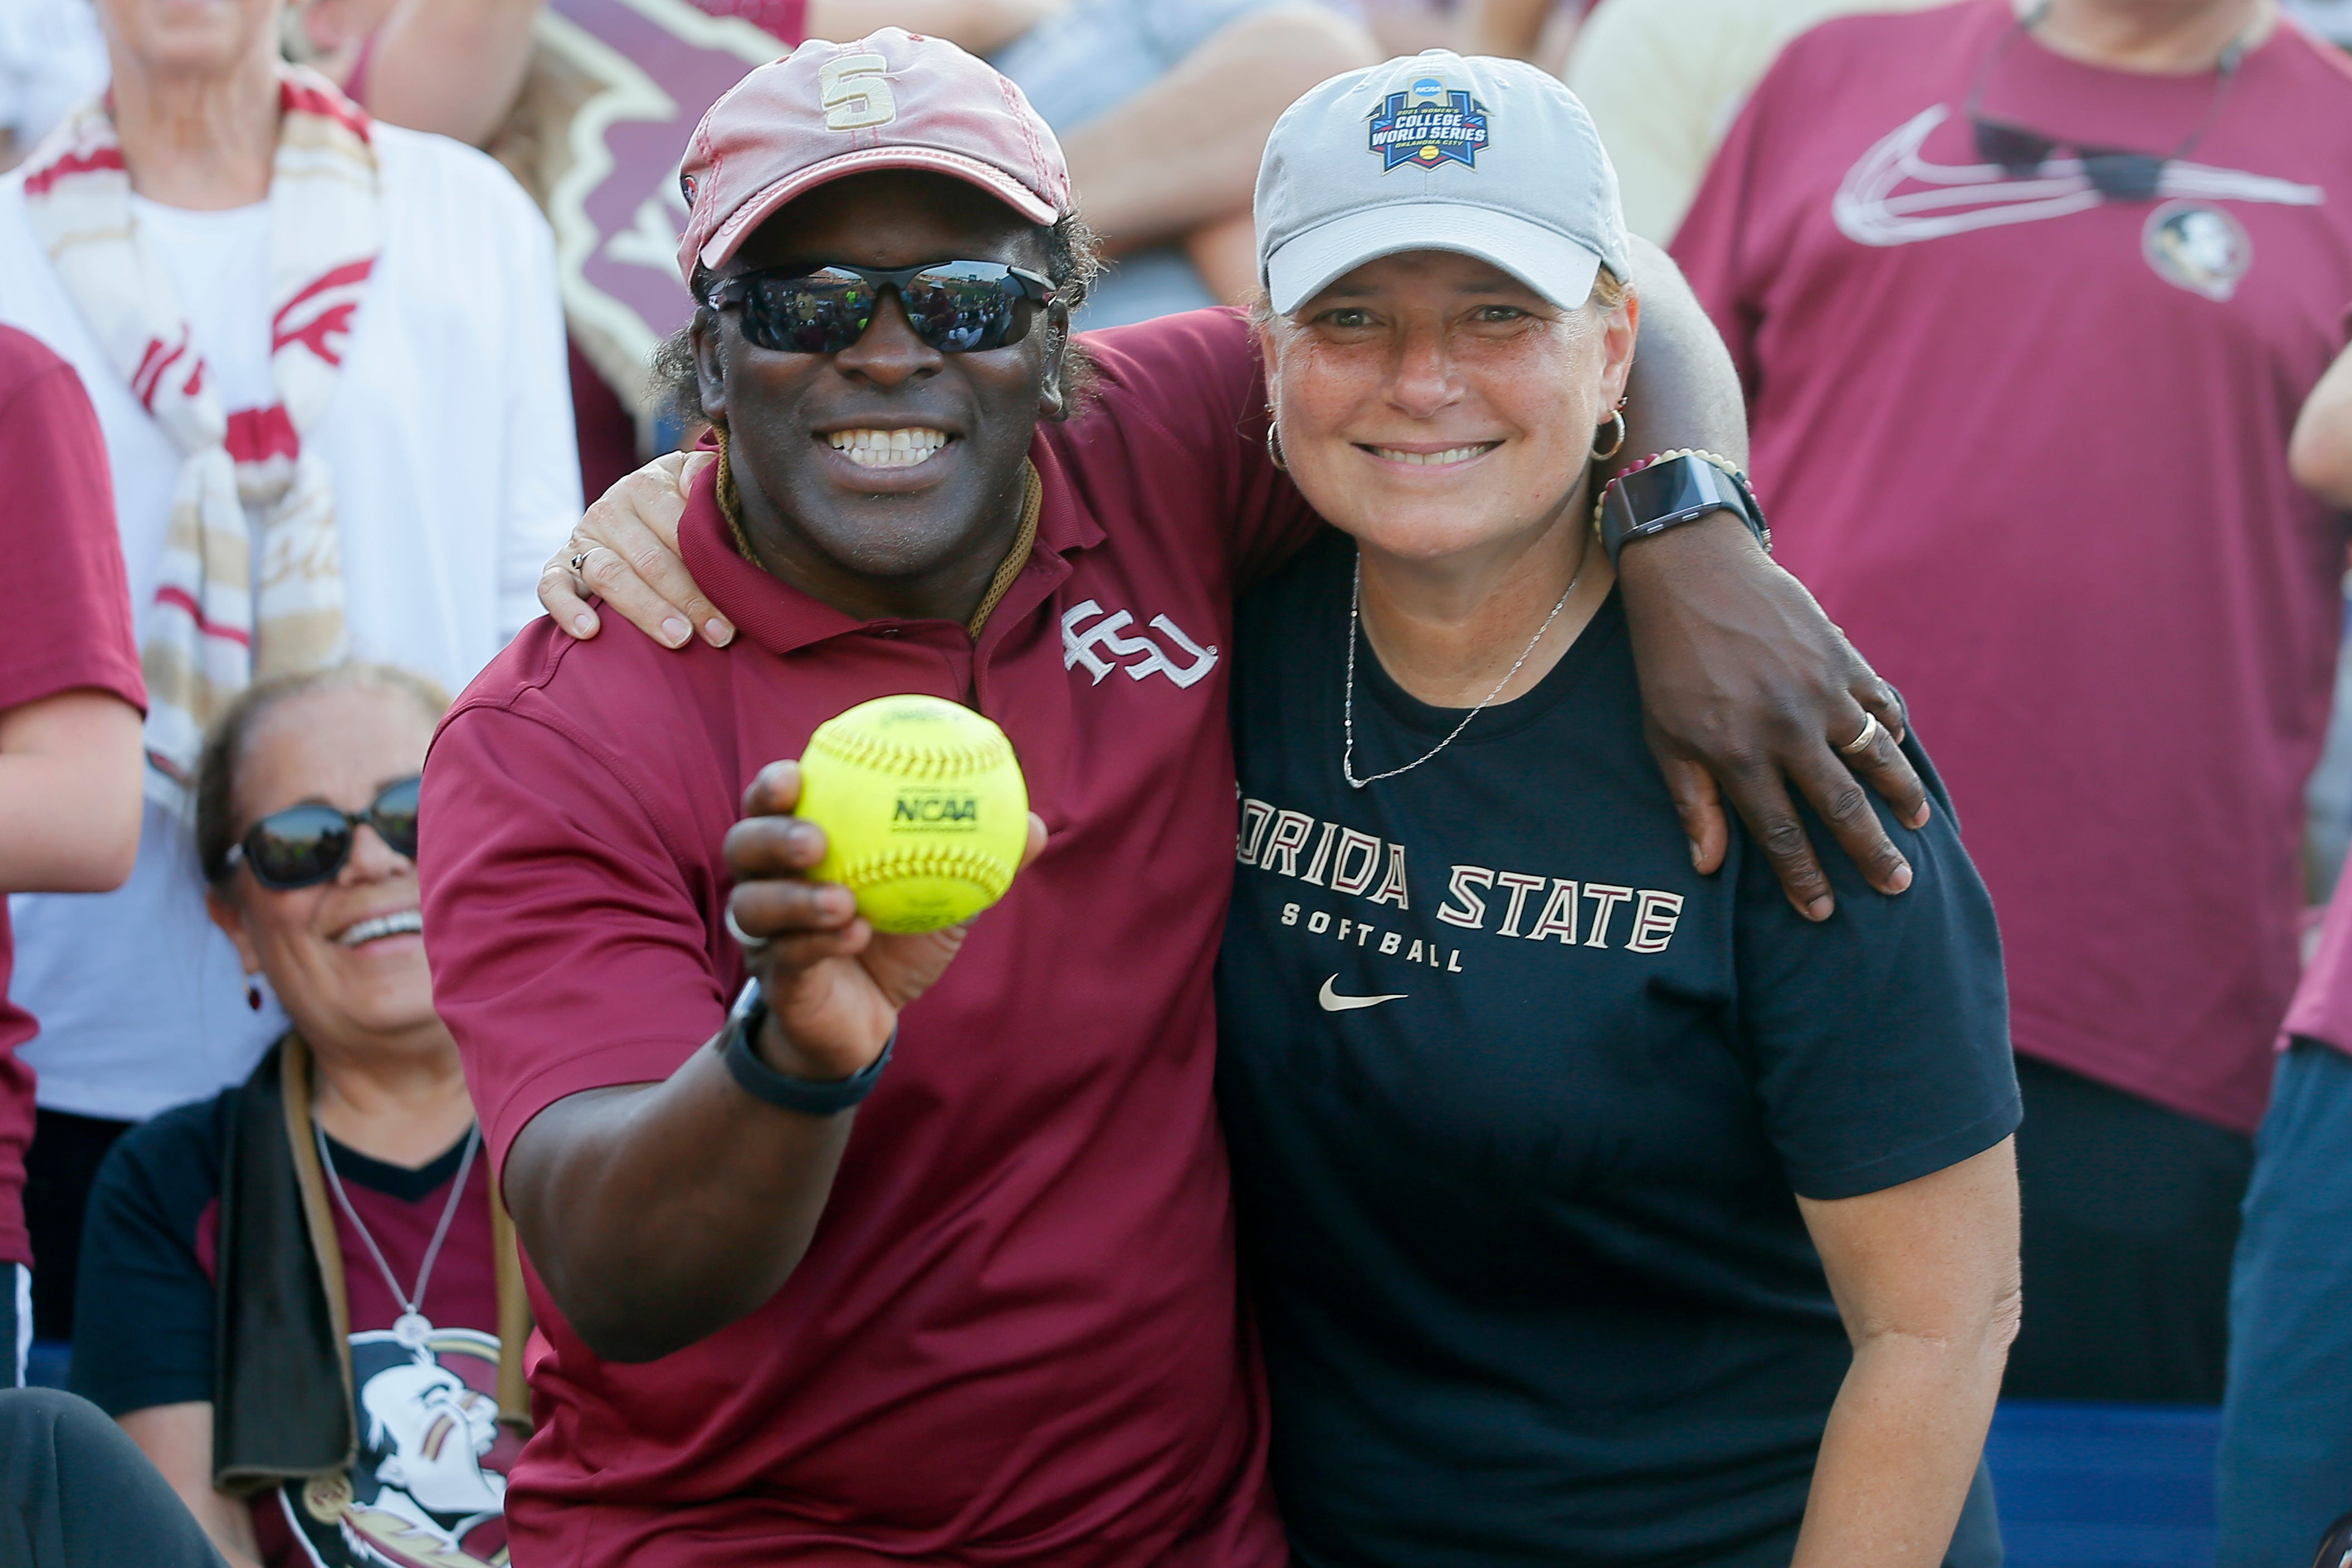 'Something every little girl dreams of': Why WCWS ushers return HR balls to players' families